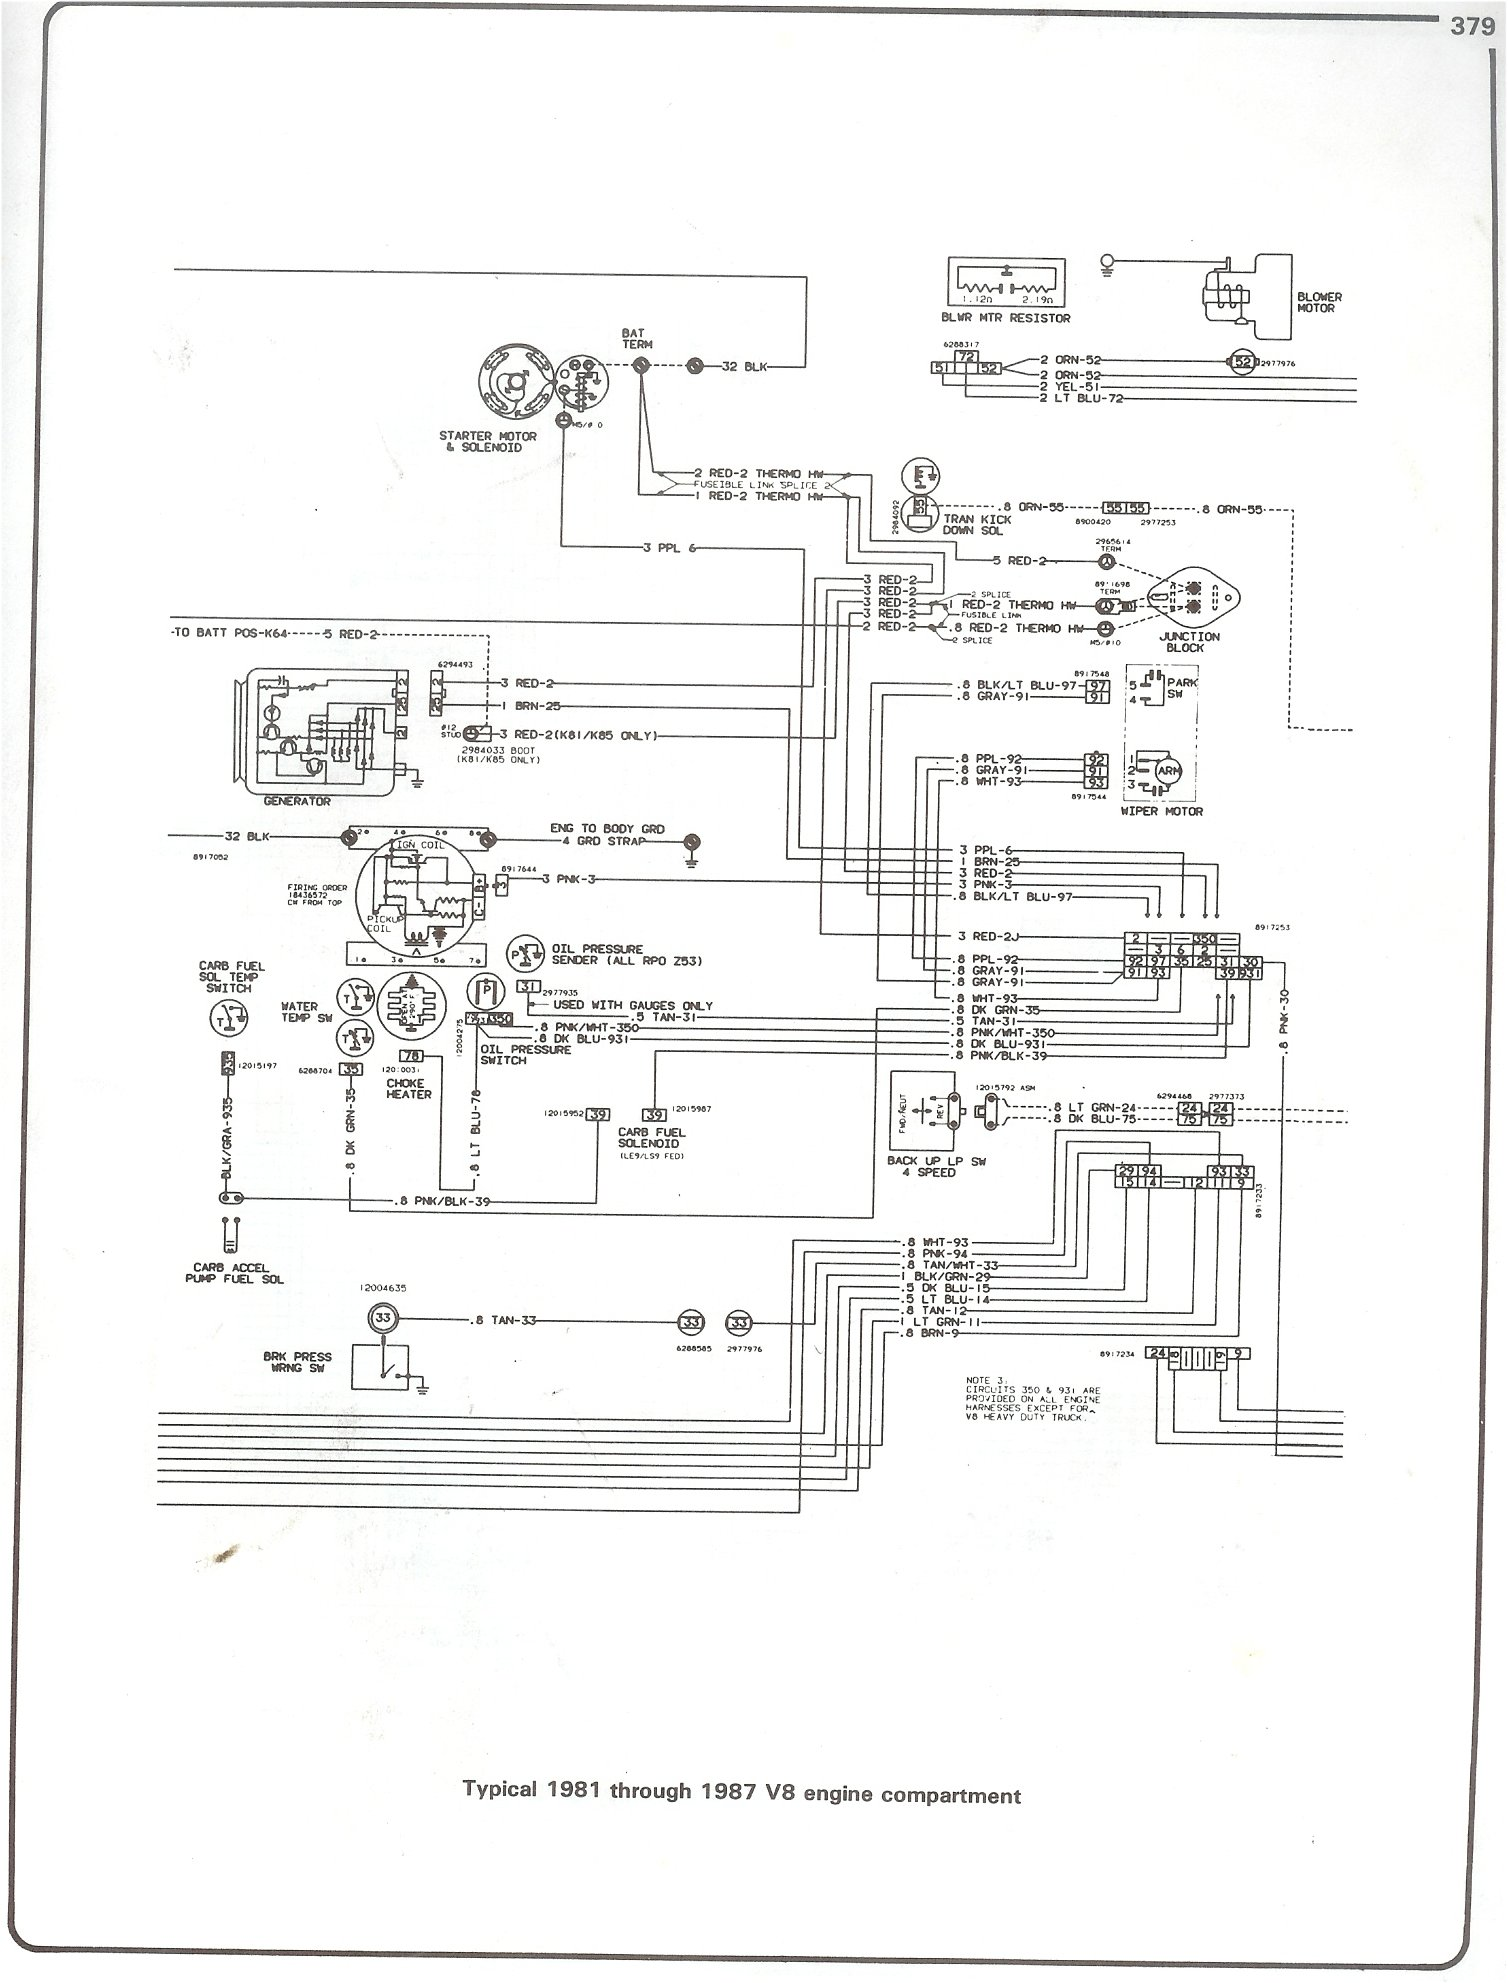 79 chevy truck fuse box wiring free download wiring diagrams Bentley Fuse Diagram  Mini Fuse Diagram Mack Fuse Diagram AC Fuse Diagram